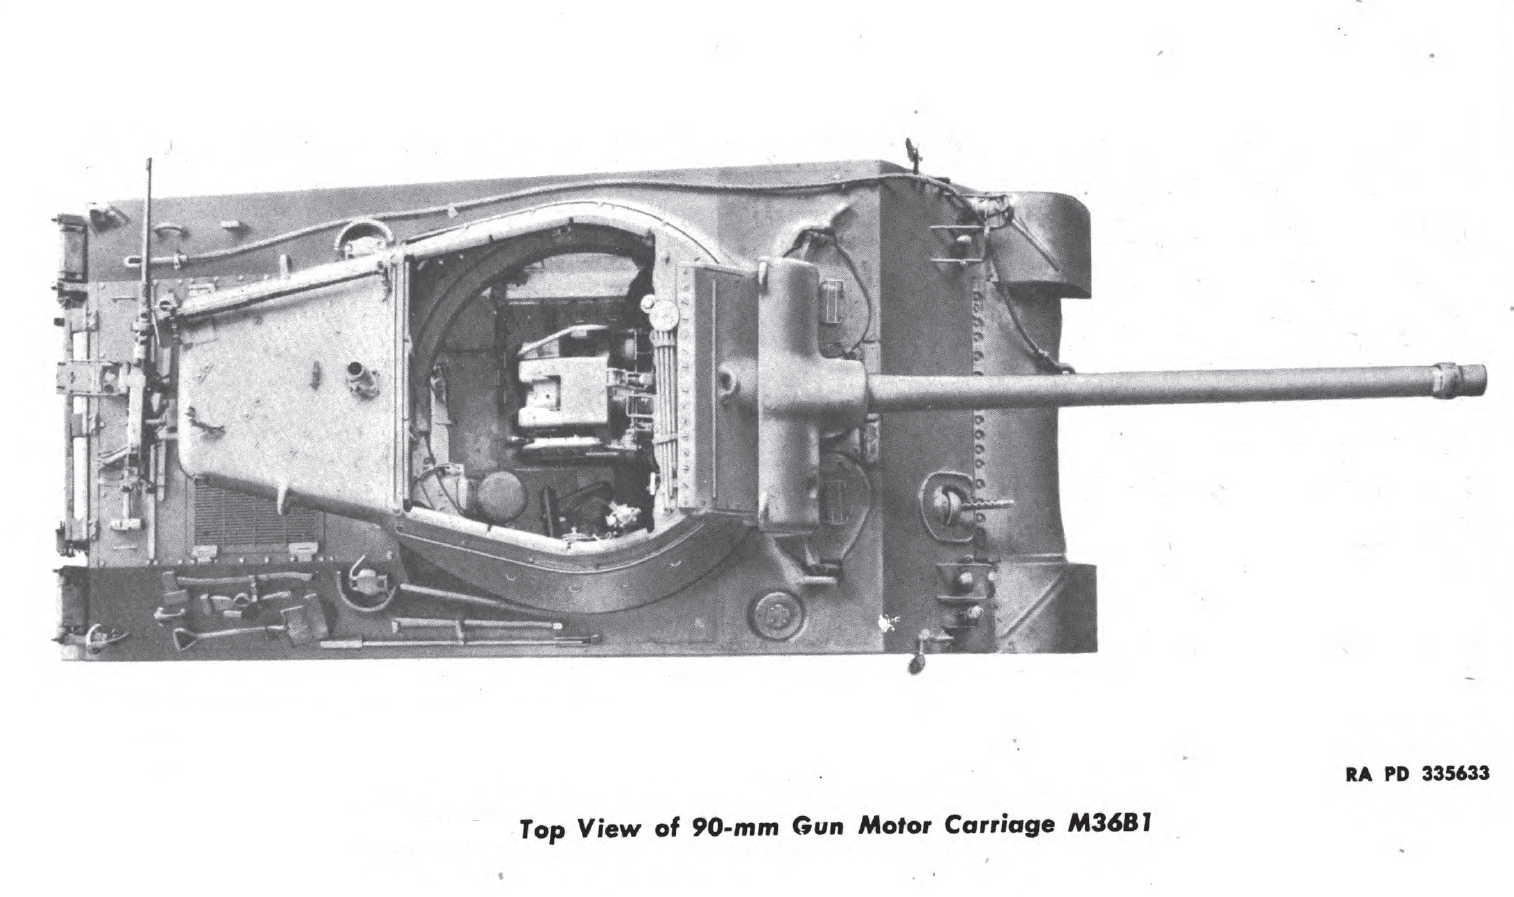 m36b1-top-view.png